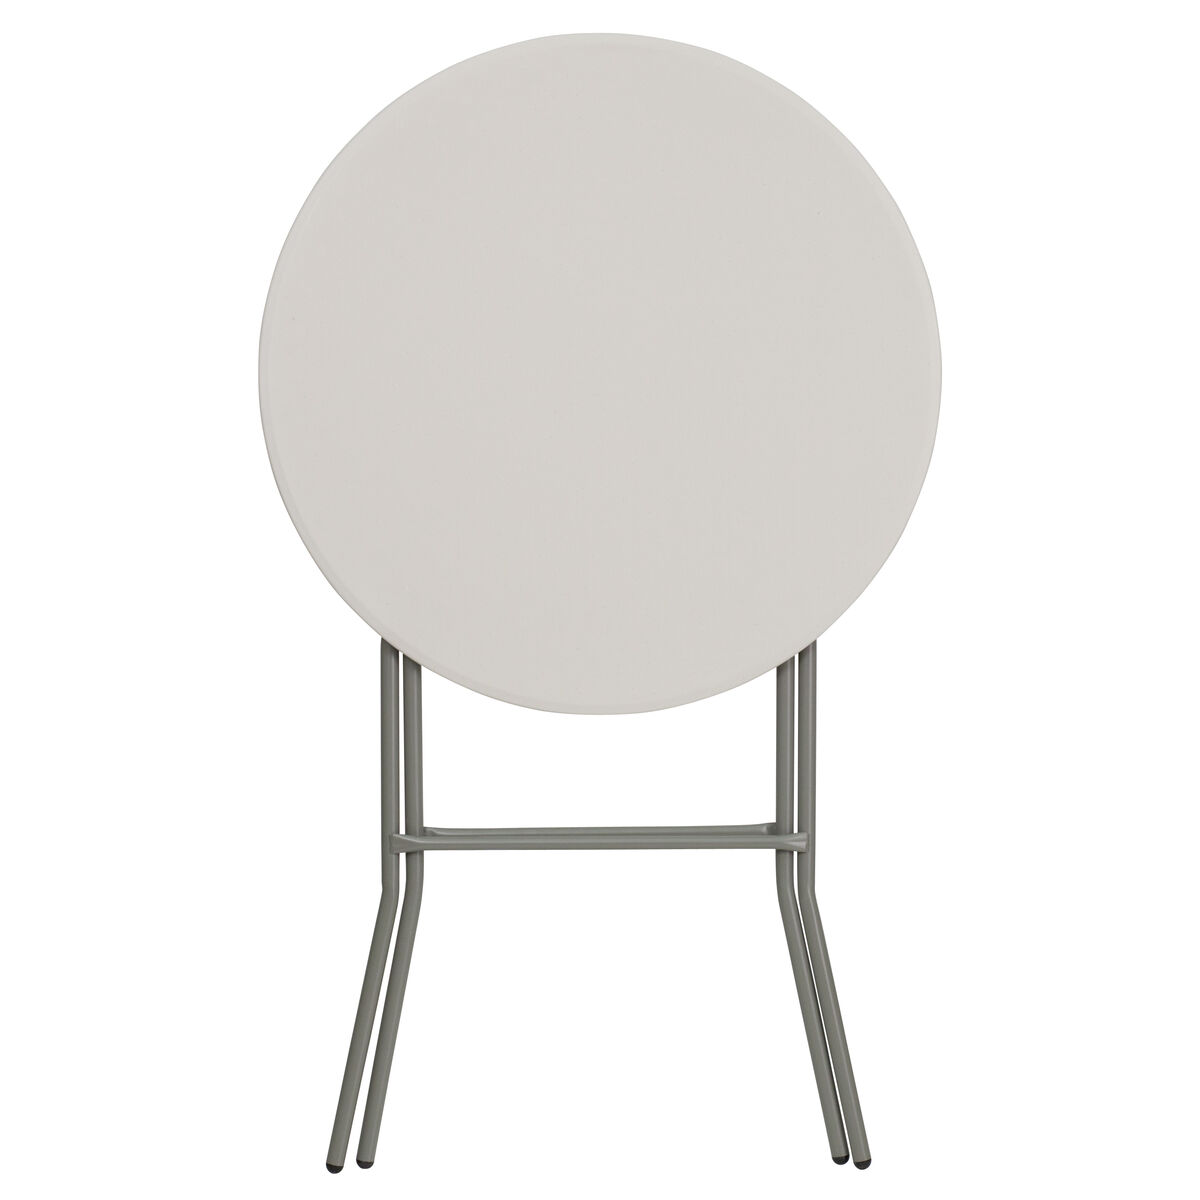 Round Table Seating Capacity 32rd White Plastic Fold Table Rb 32rb Bar Gw Gg